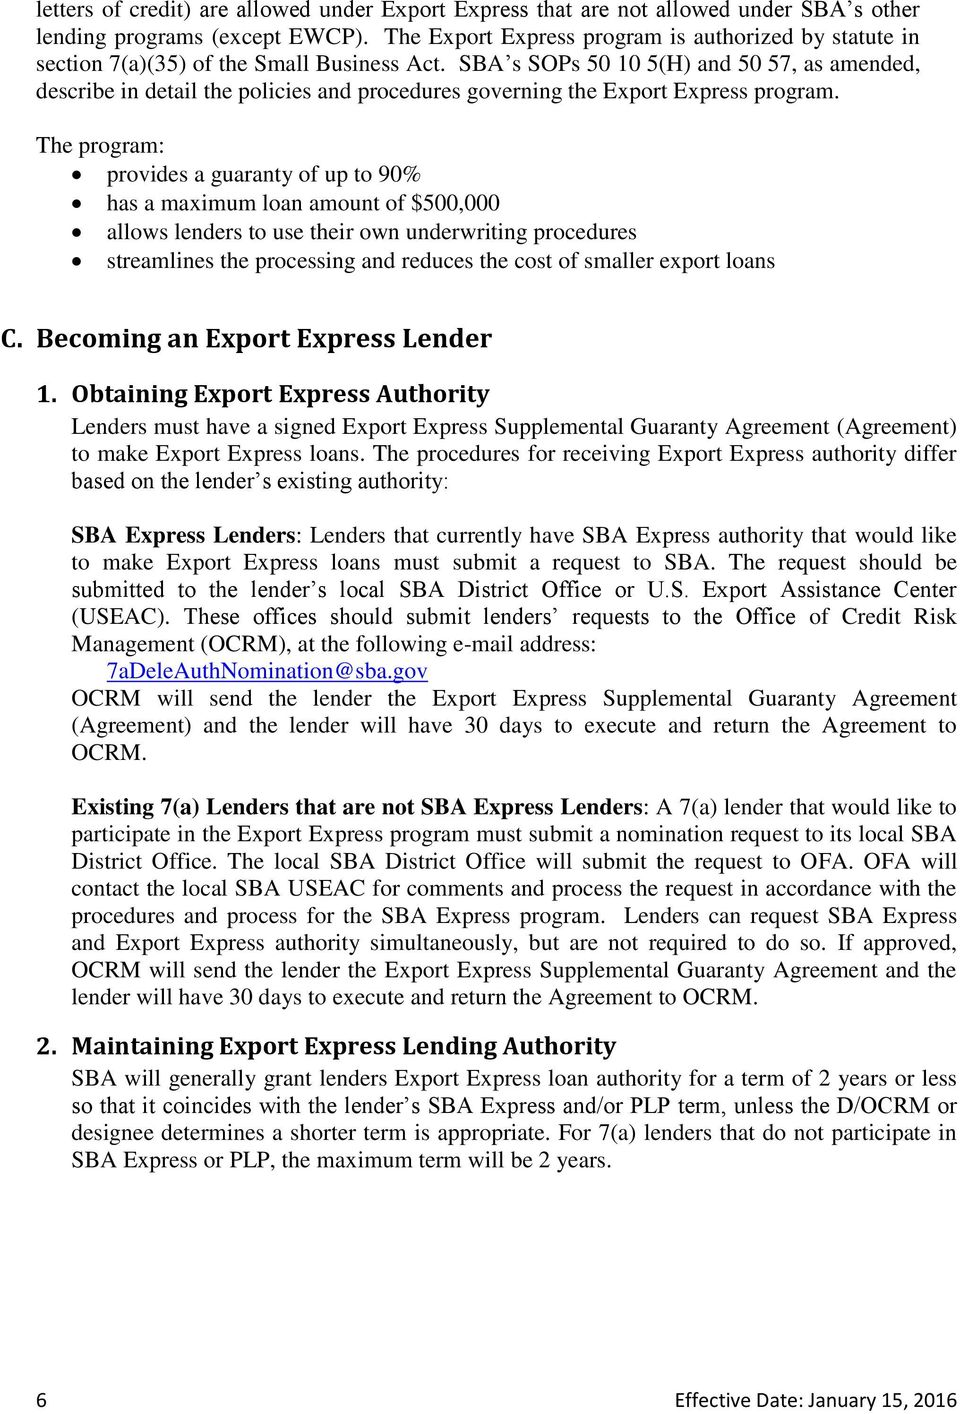 SBA s SOPs 50 10 5(H) and 50 57, as amended, describe in detail the policies and procedures governing the Export Express program.